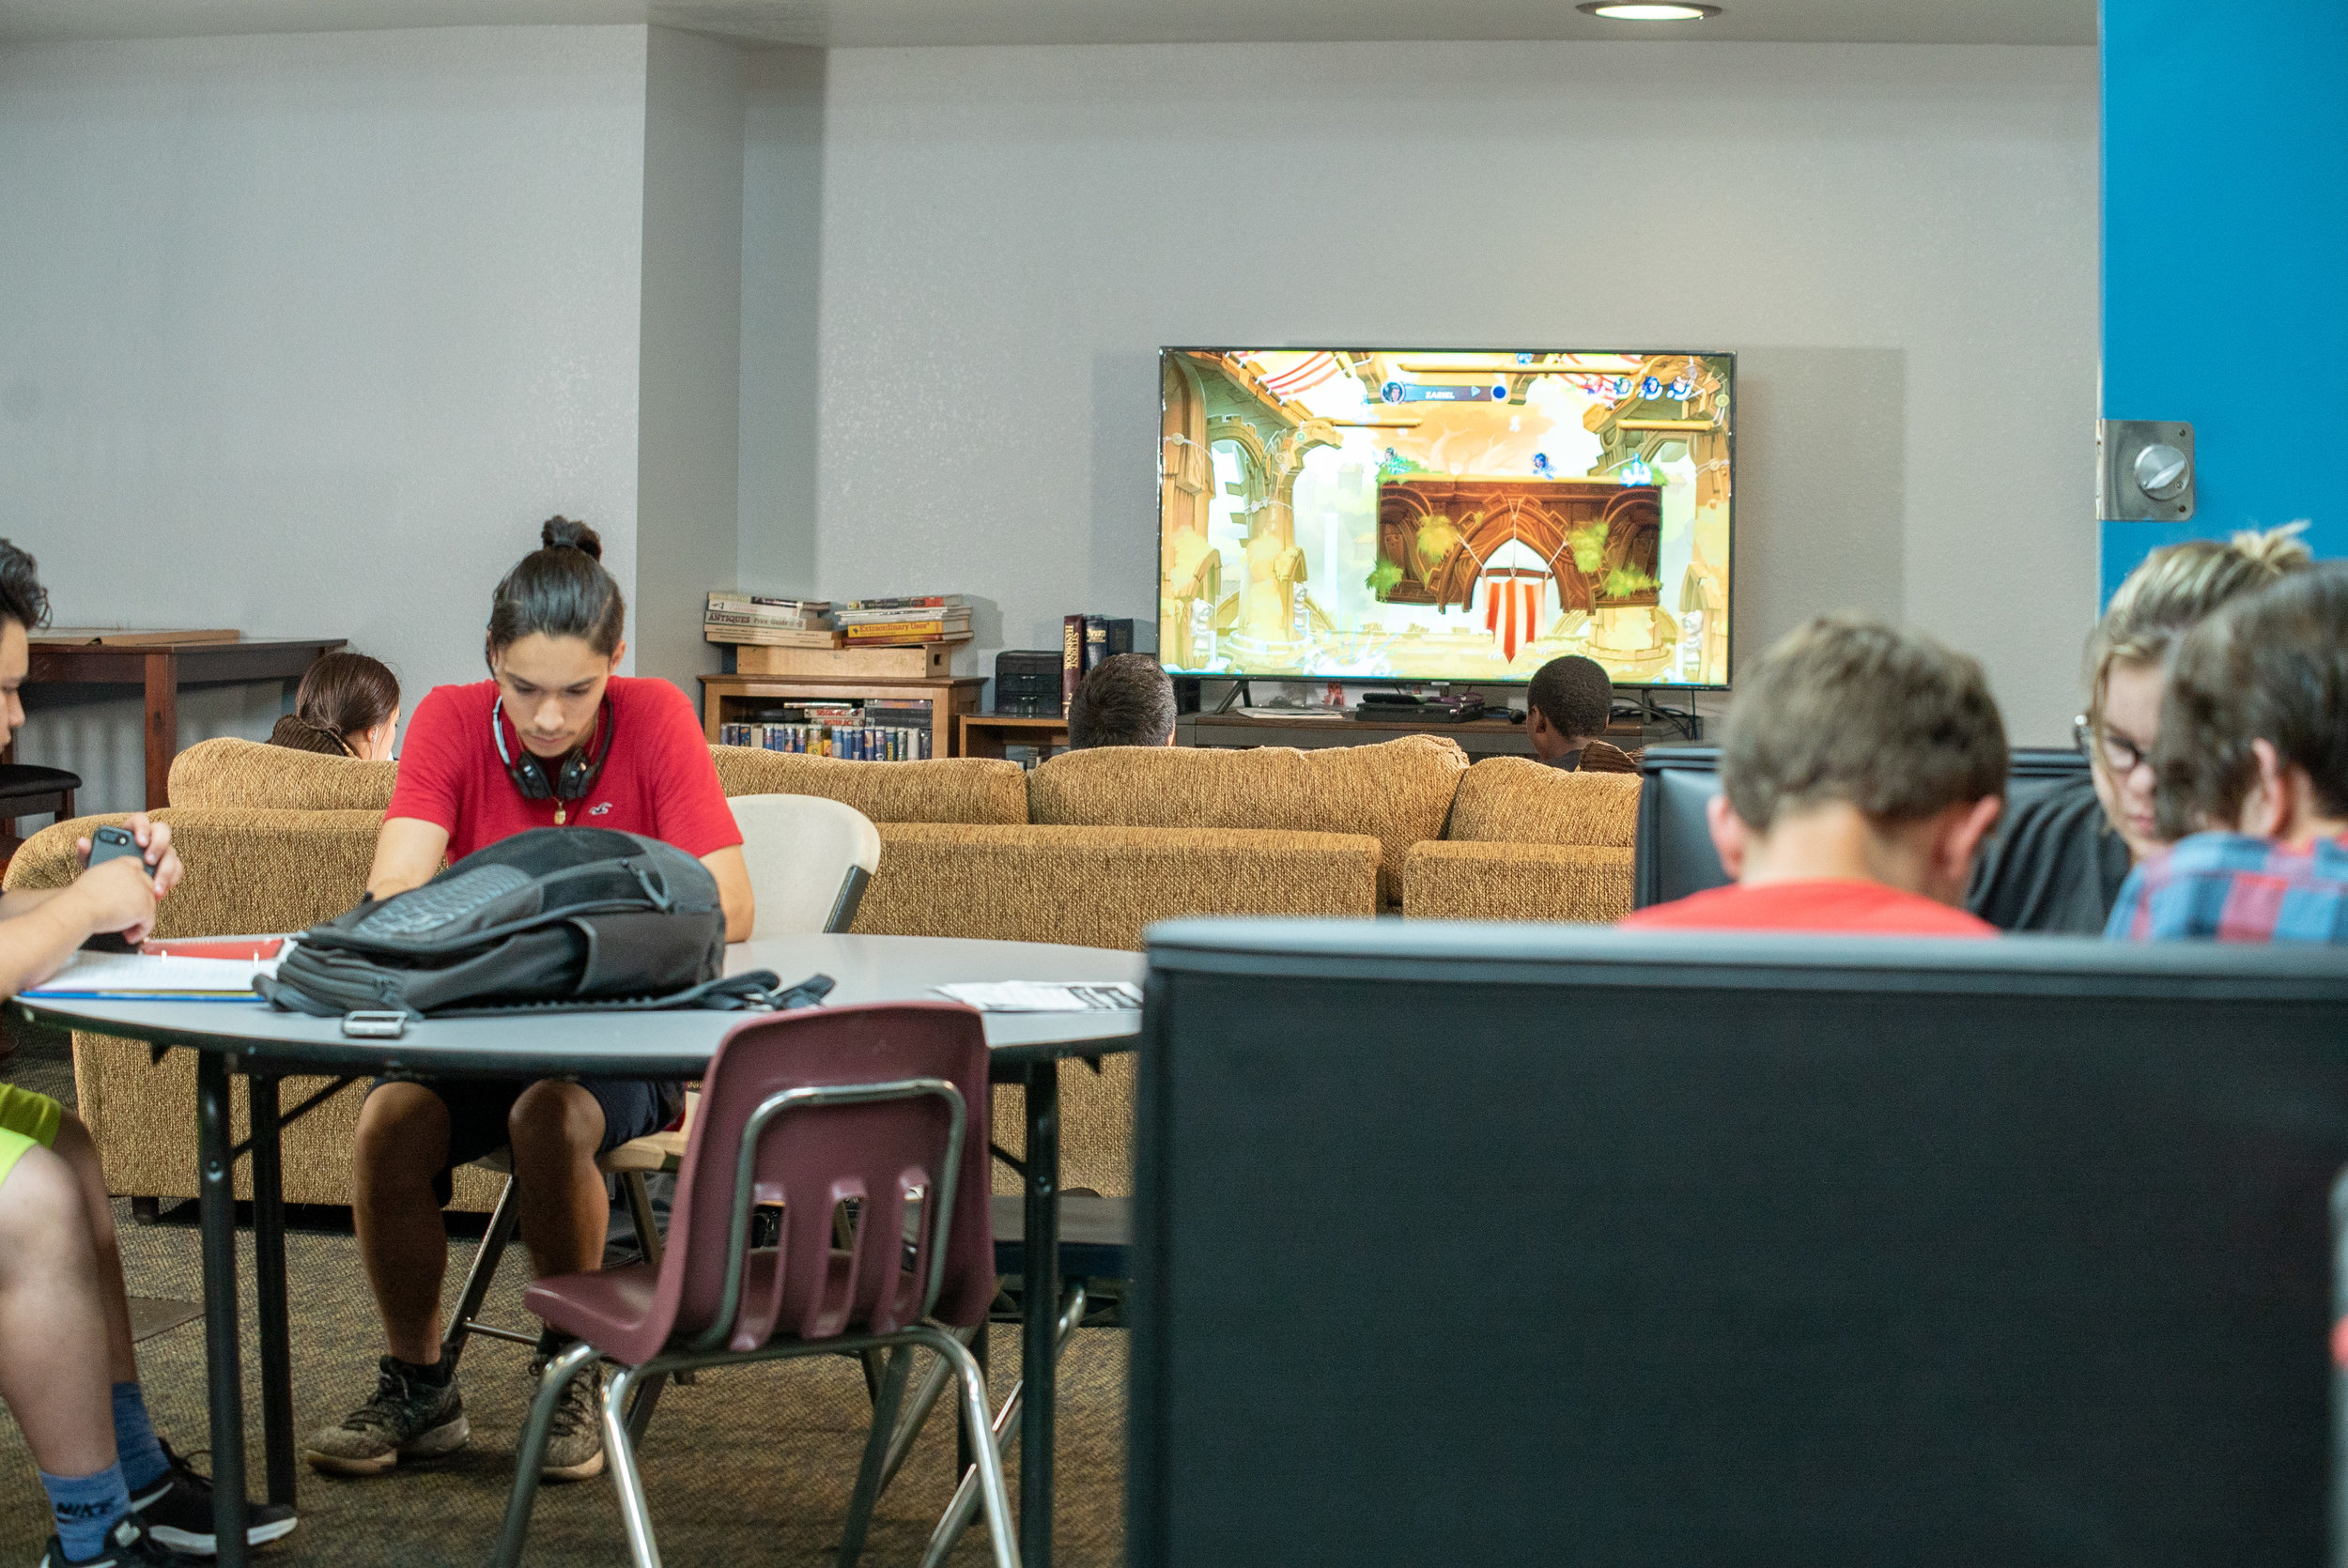 Teens take a video game break in the comfy sectional and bean bag chairs.